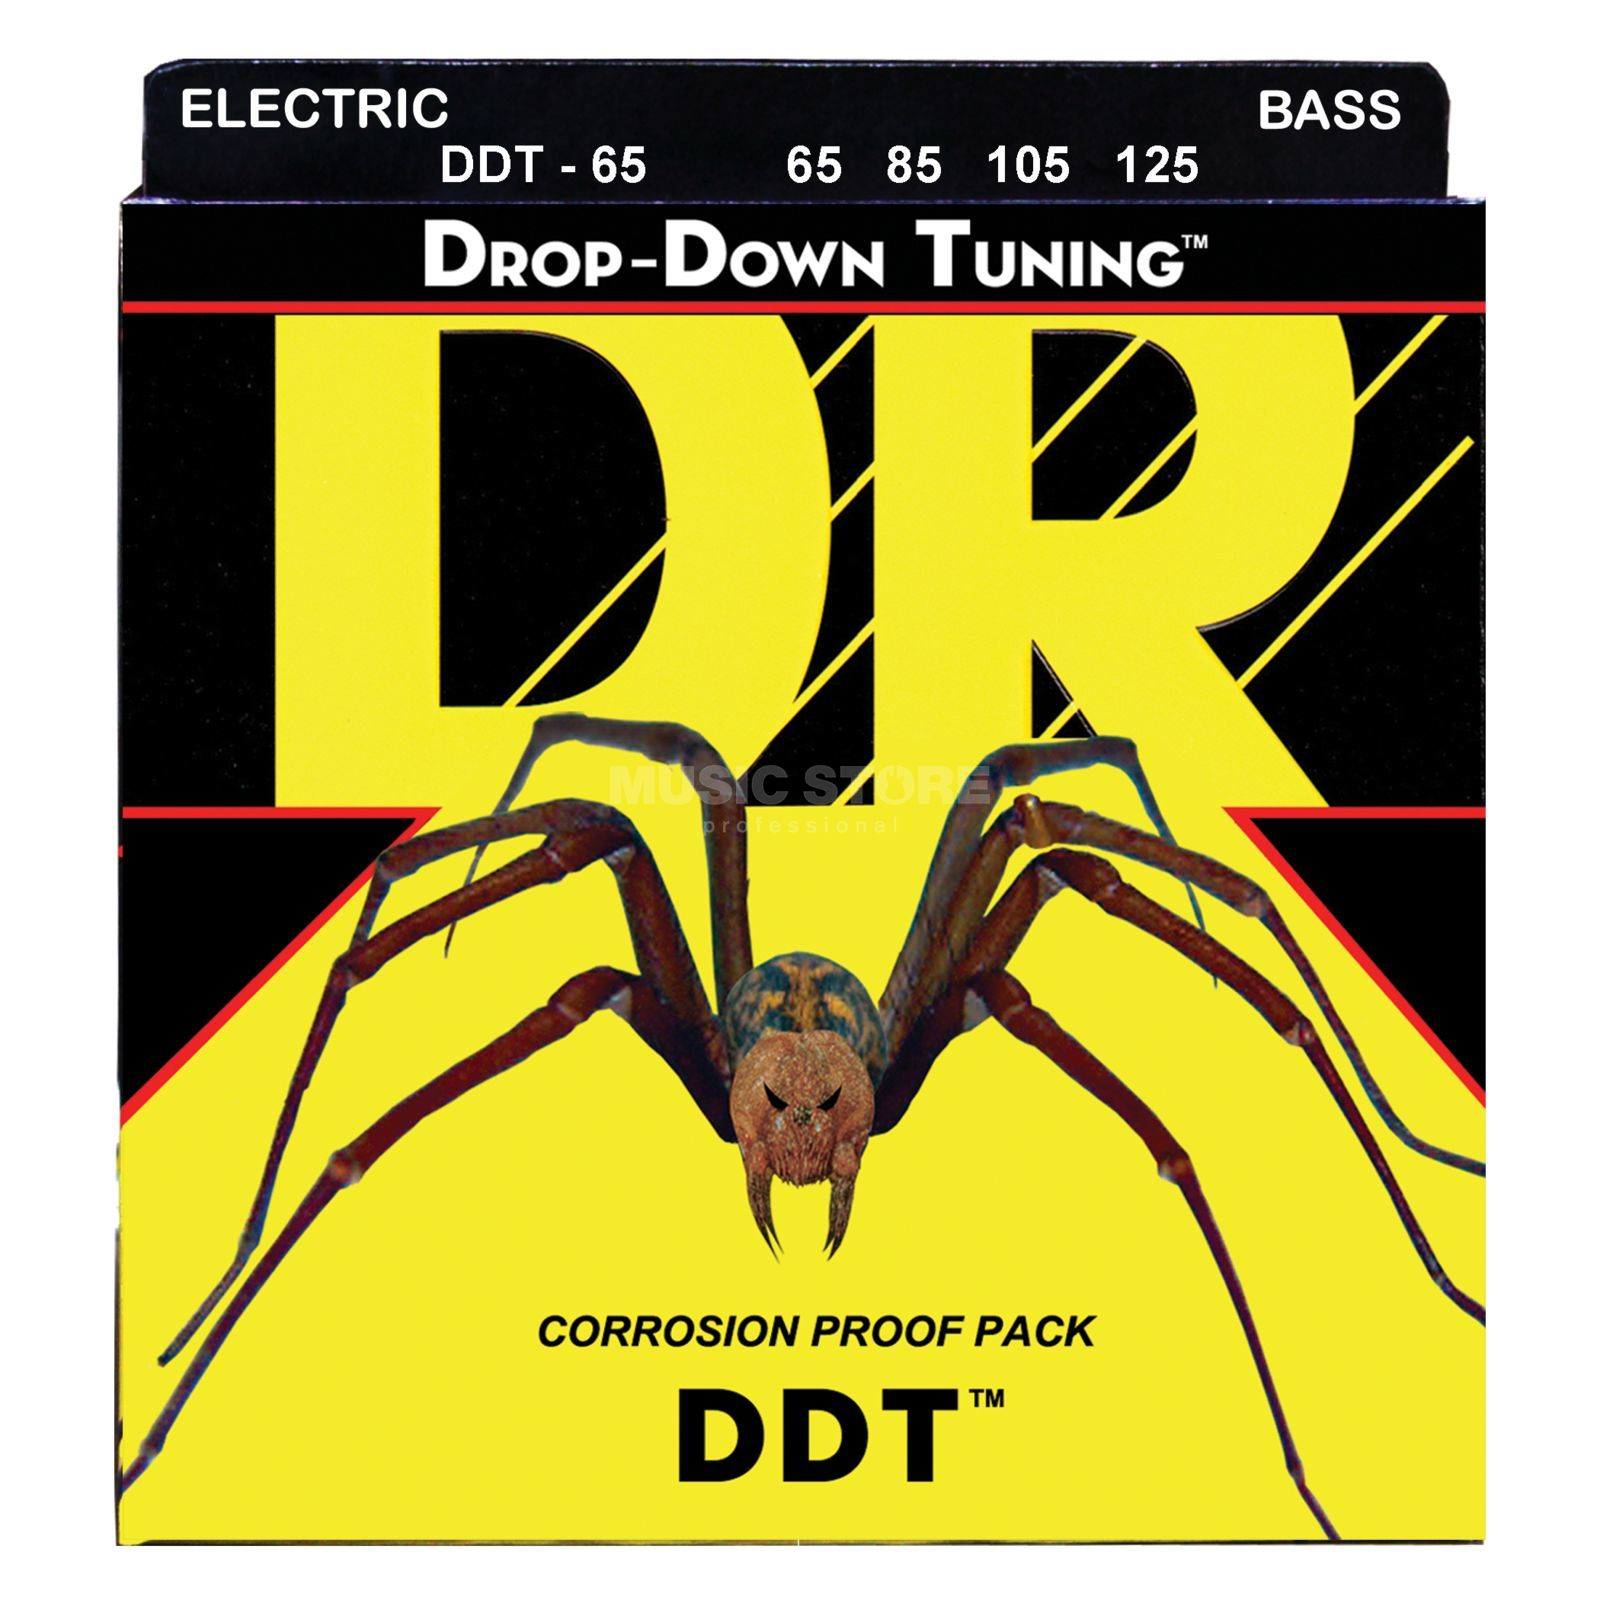 DR 4 Bass Strings 65-125 Drop-Down Tuning DDT-65 Produktbillede